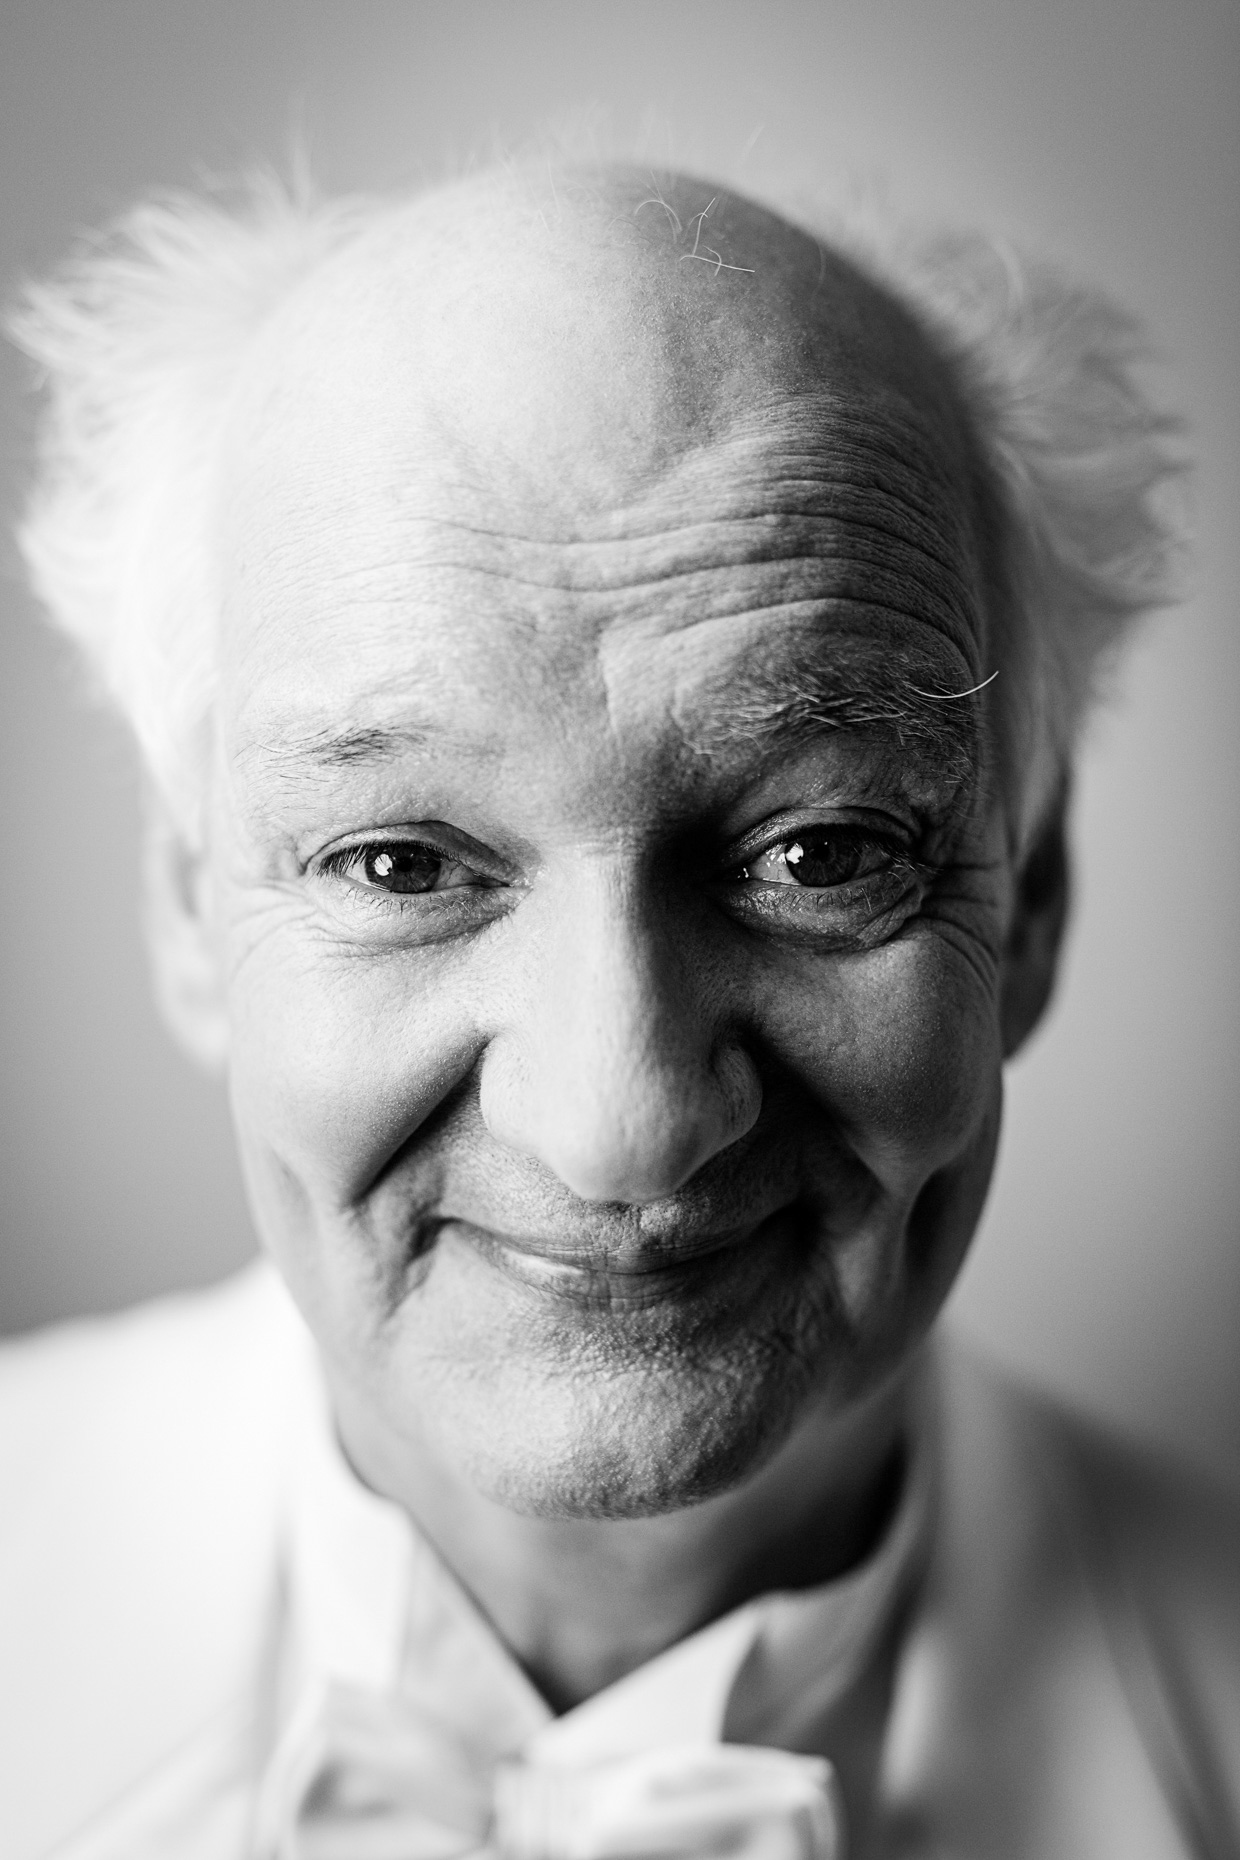 B&W editorial portrait of Improv performer Colin Mochrie in a white tuxedo by Andy Batt